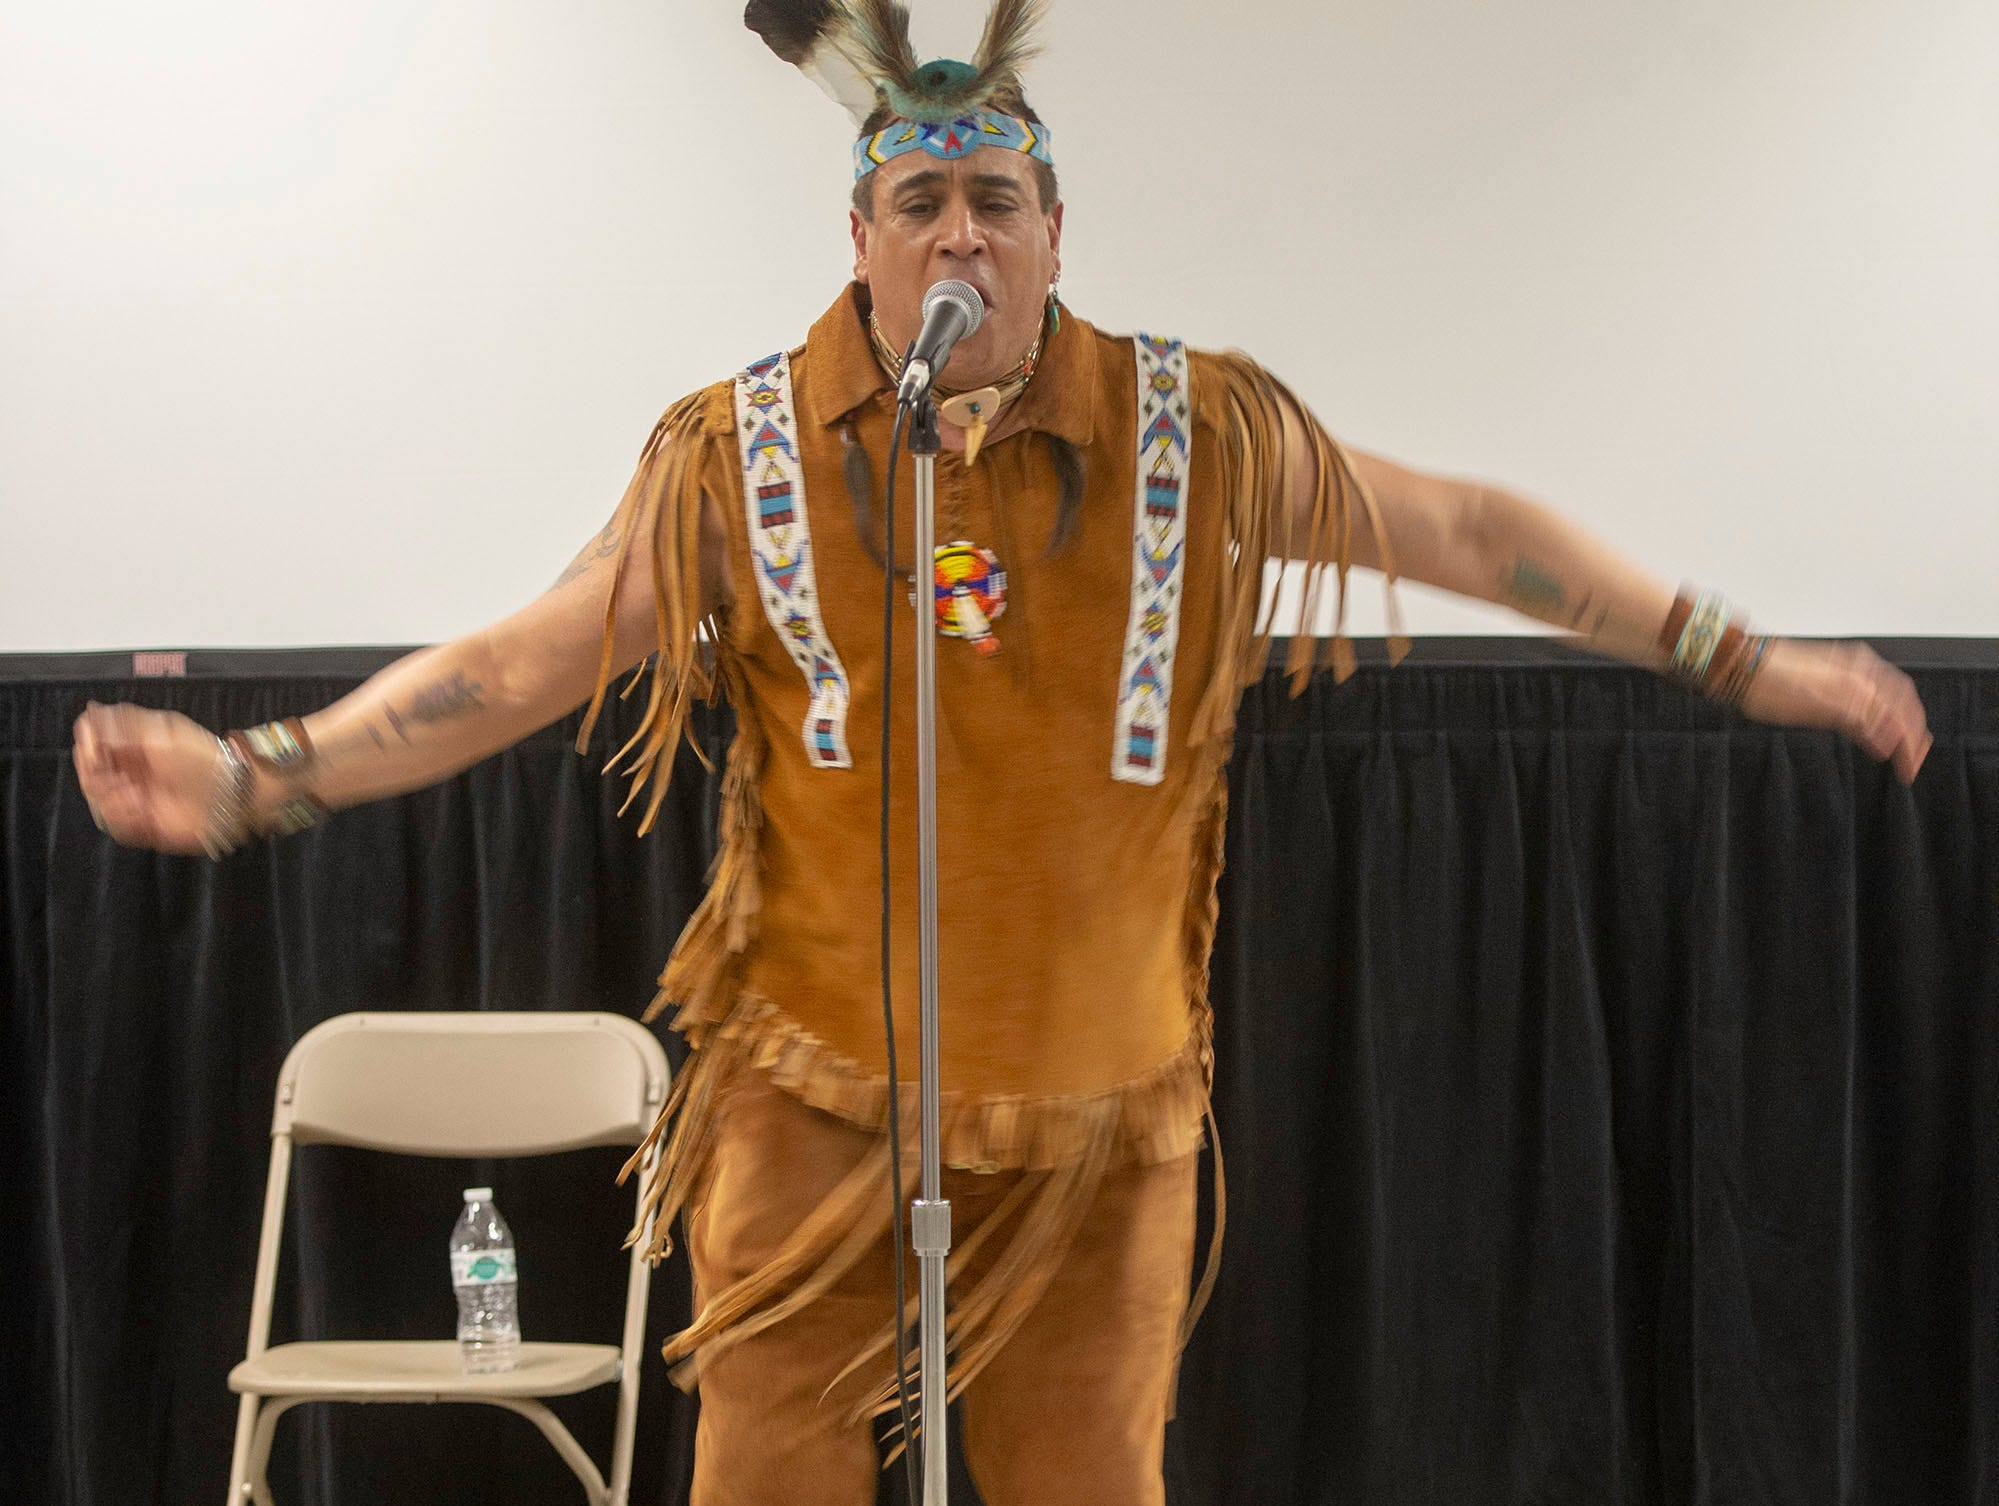 Felipe Rose showed off his dance moves in a set of his own songs Saturday at the White Rose Comic Con, which runs through Sunday, March 24, 2019 at Utz Arena of the York Fairgrounds.